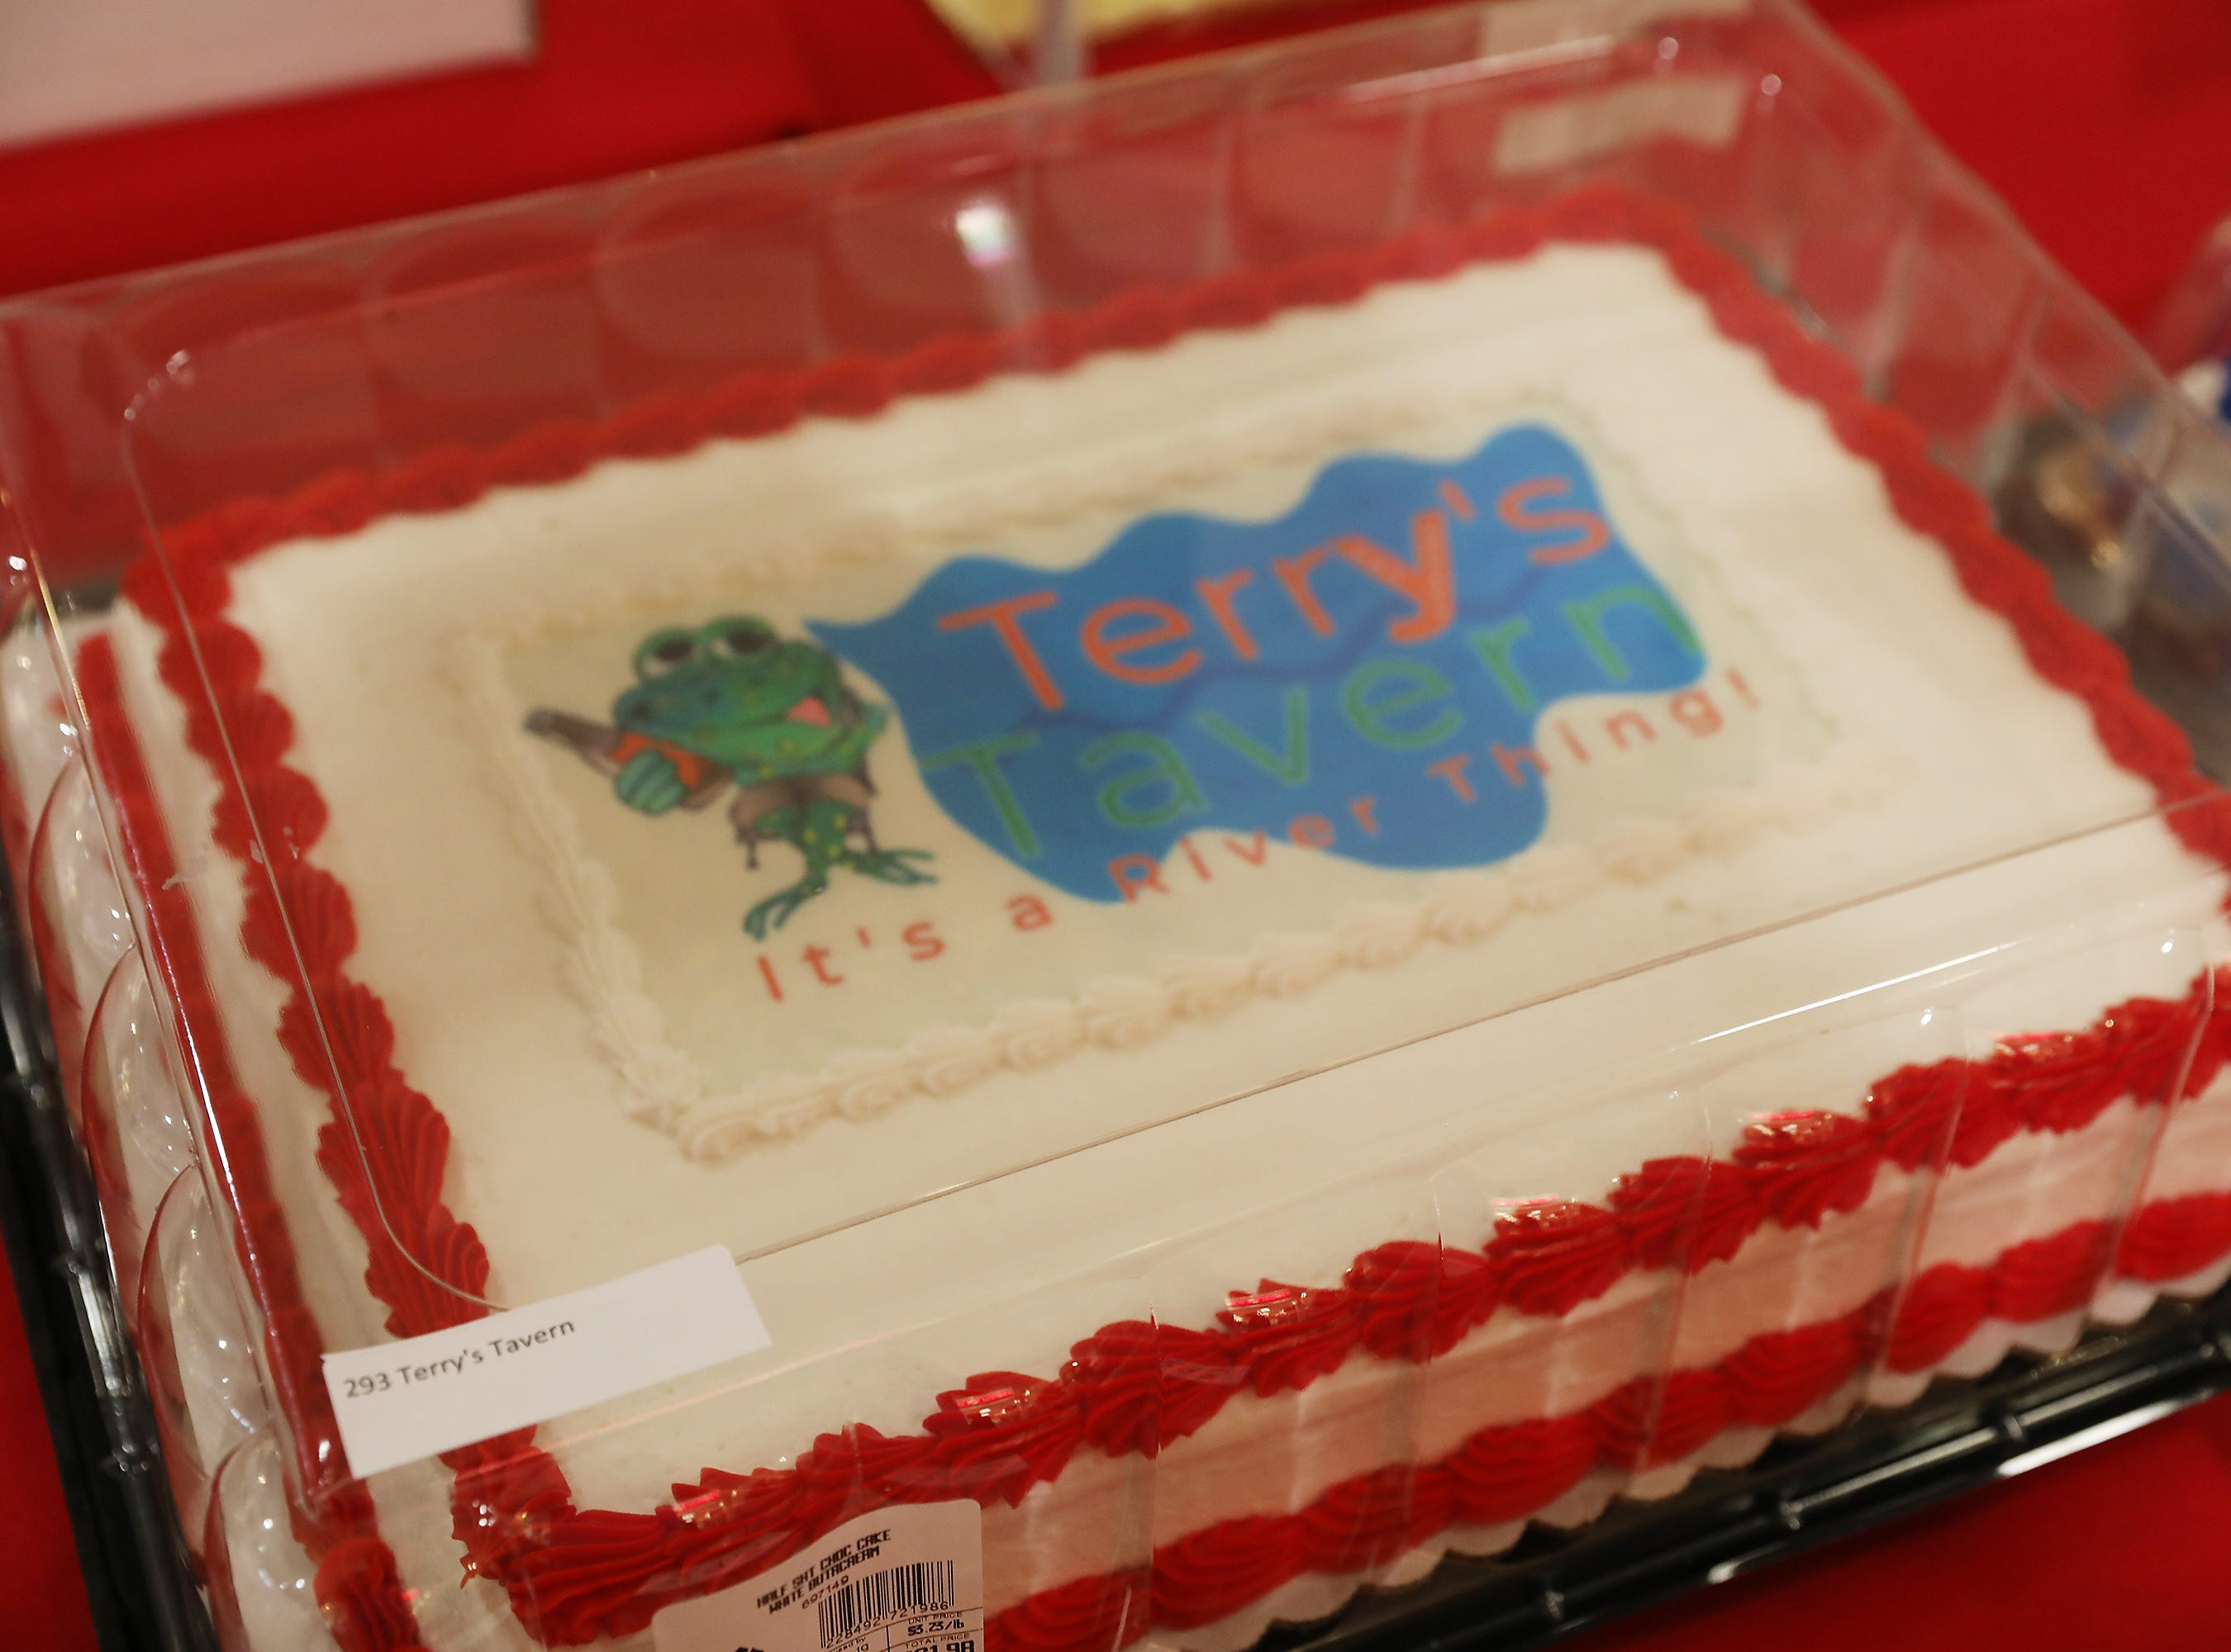 11:45 A.M. Friday cake 293 Terry's Tavern - soup, sandwich,beverage for two, one per month for one year; $300